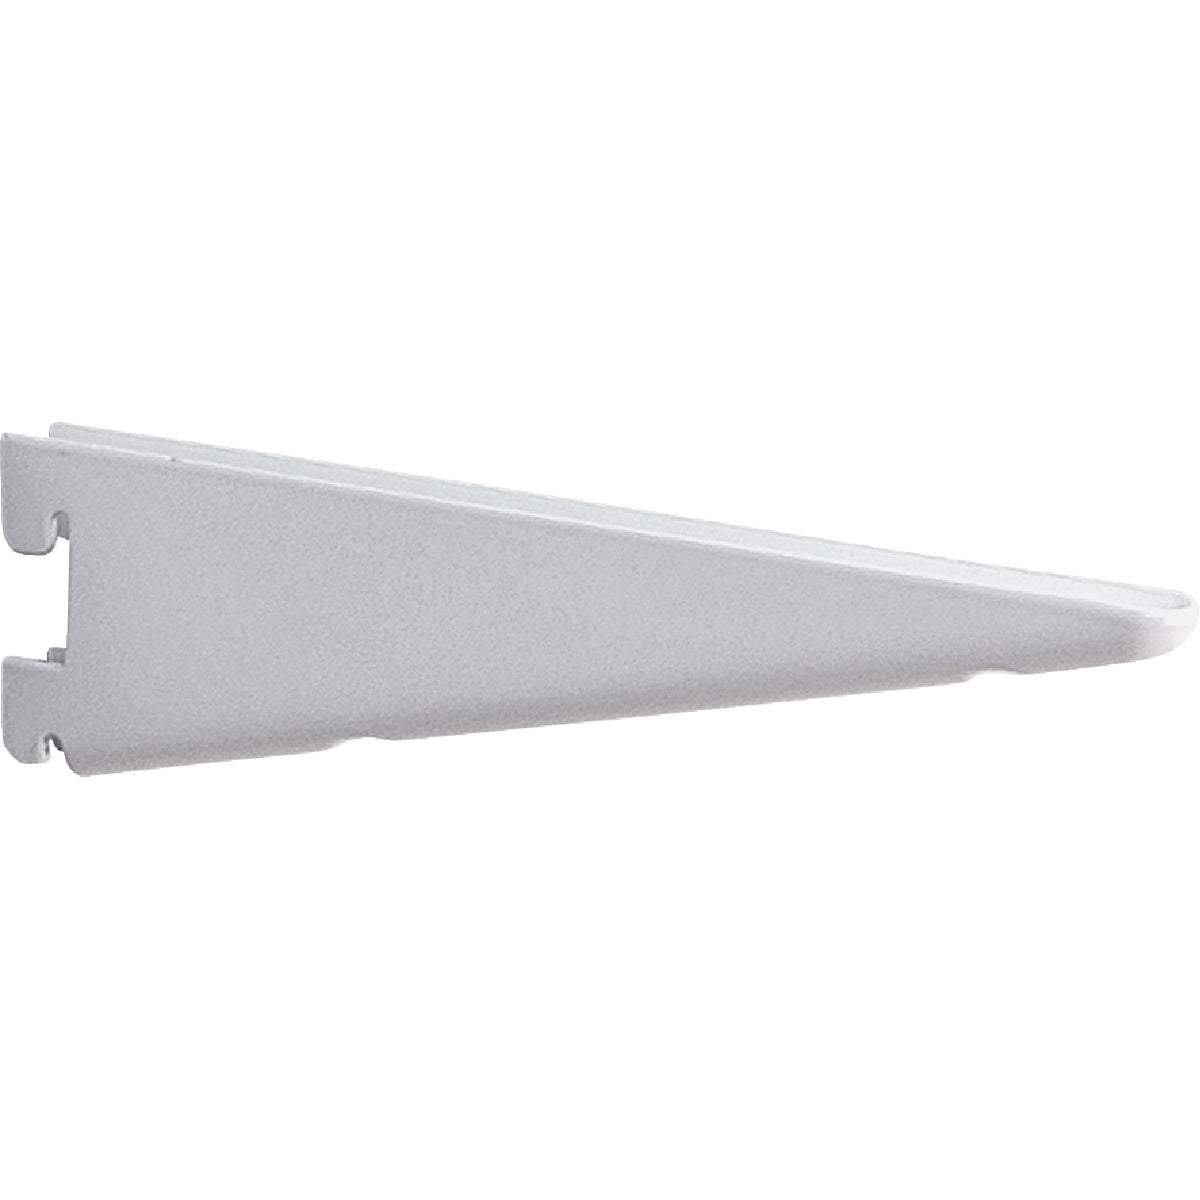 "10-1/2"" WHITE BRACKET - 182WH10.5 by Knape & Vogt Mfg Co"